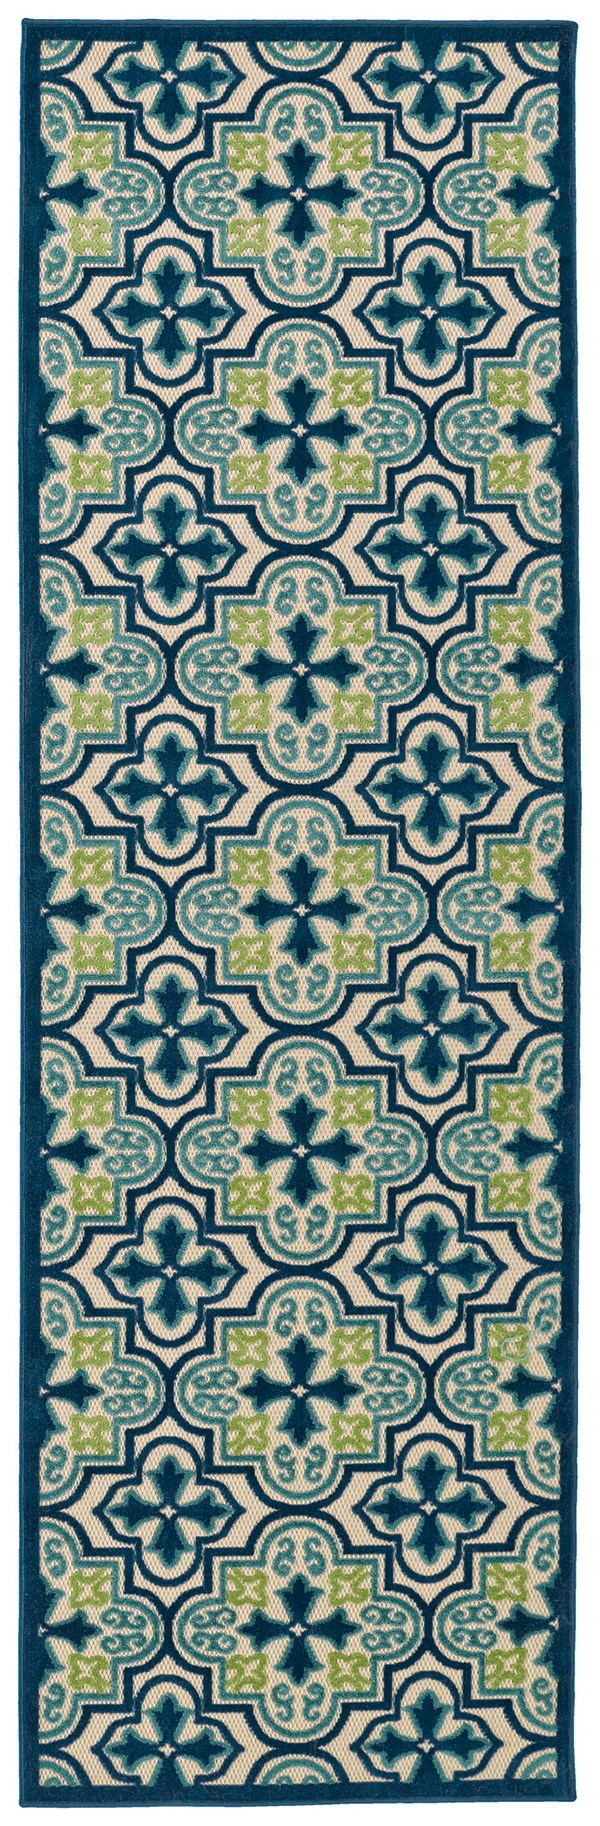 Blue, Green, Beige (17) Moroccan Area Rug